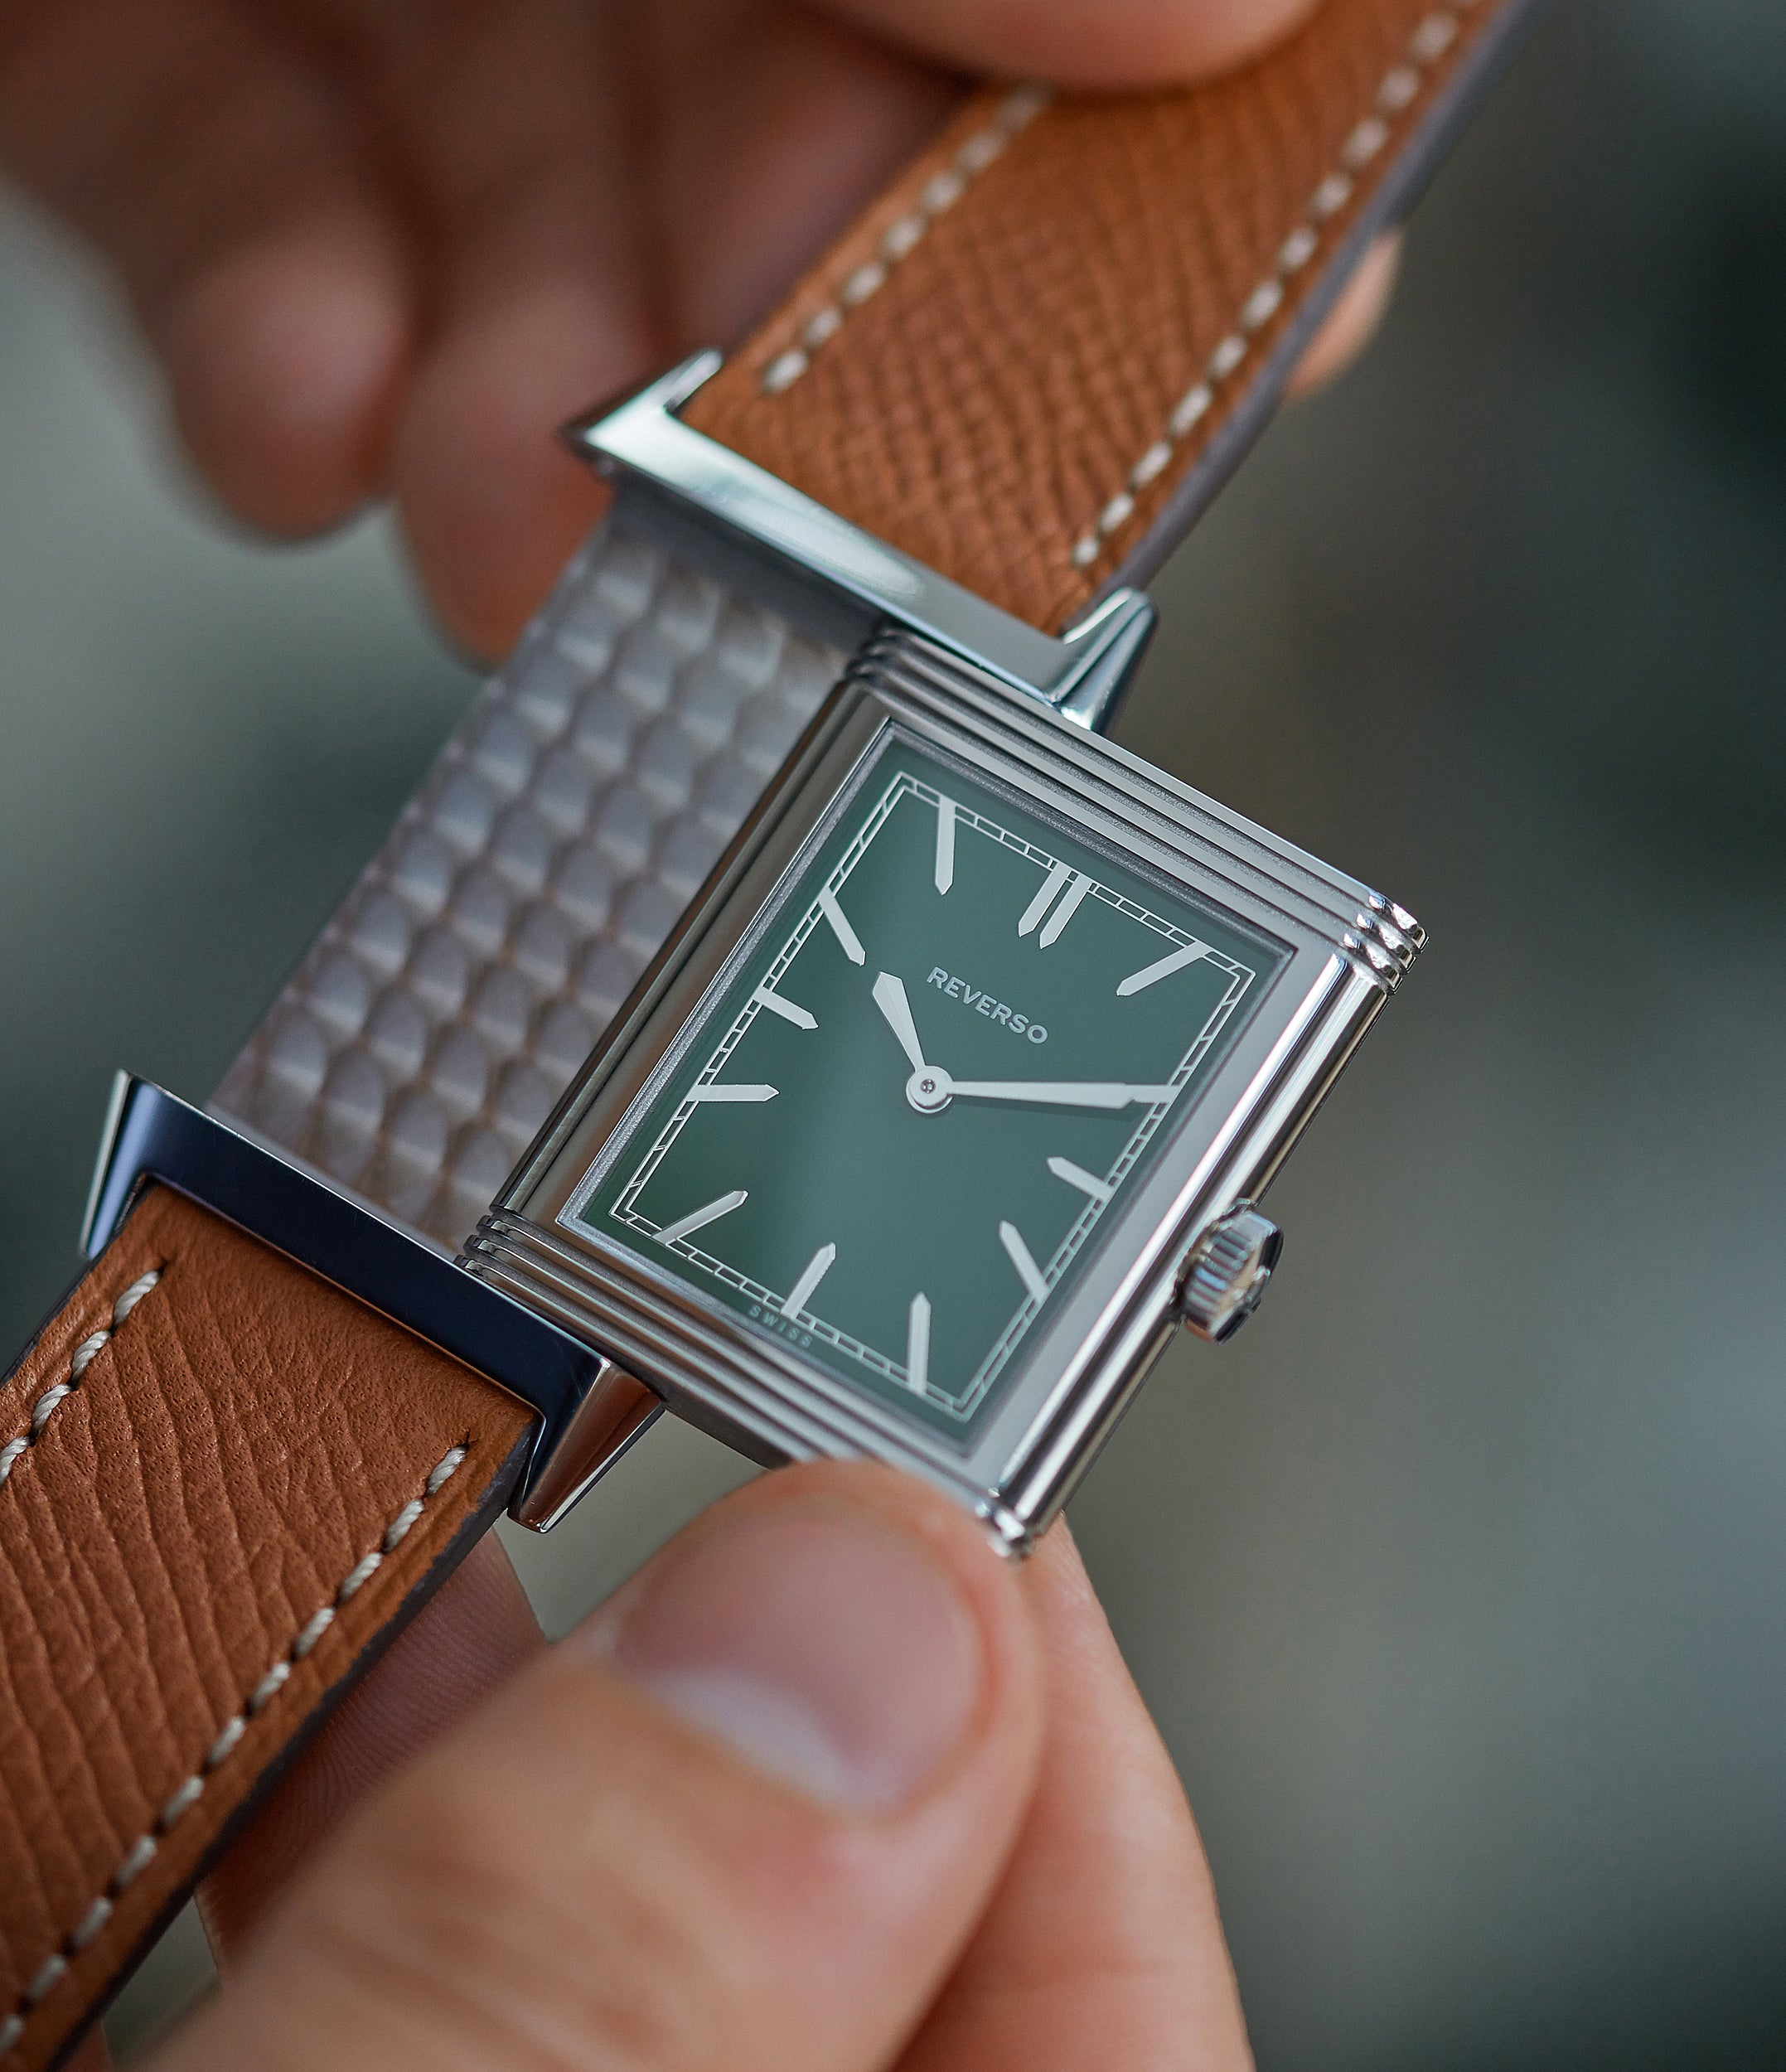 purchase men's watch pre-owned Jaeger-LeCoultre Grand Reverso 1931 Green London Flagship Edition engraved